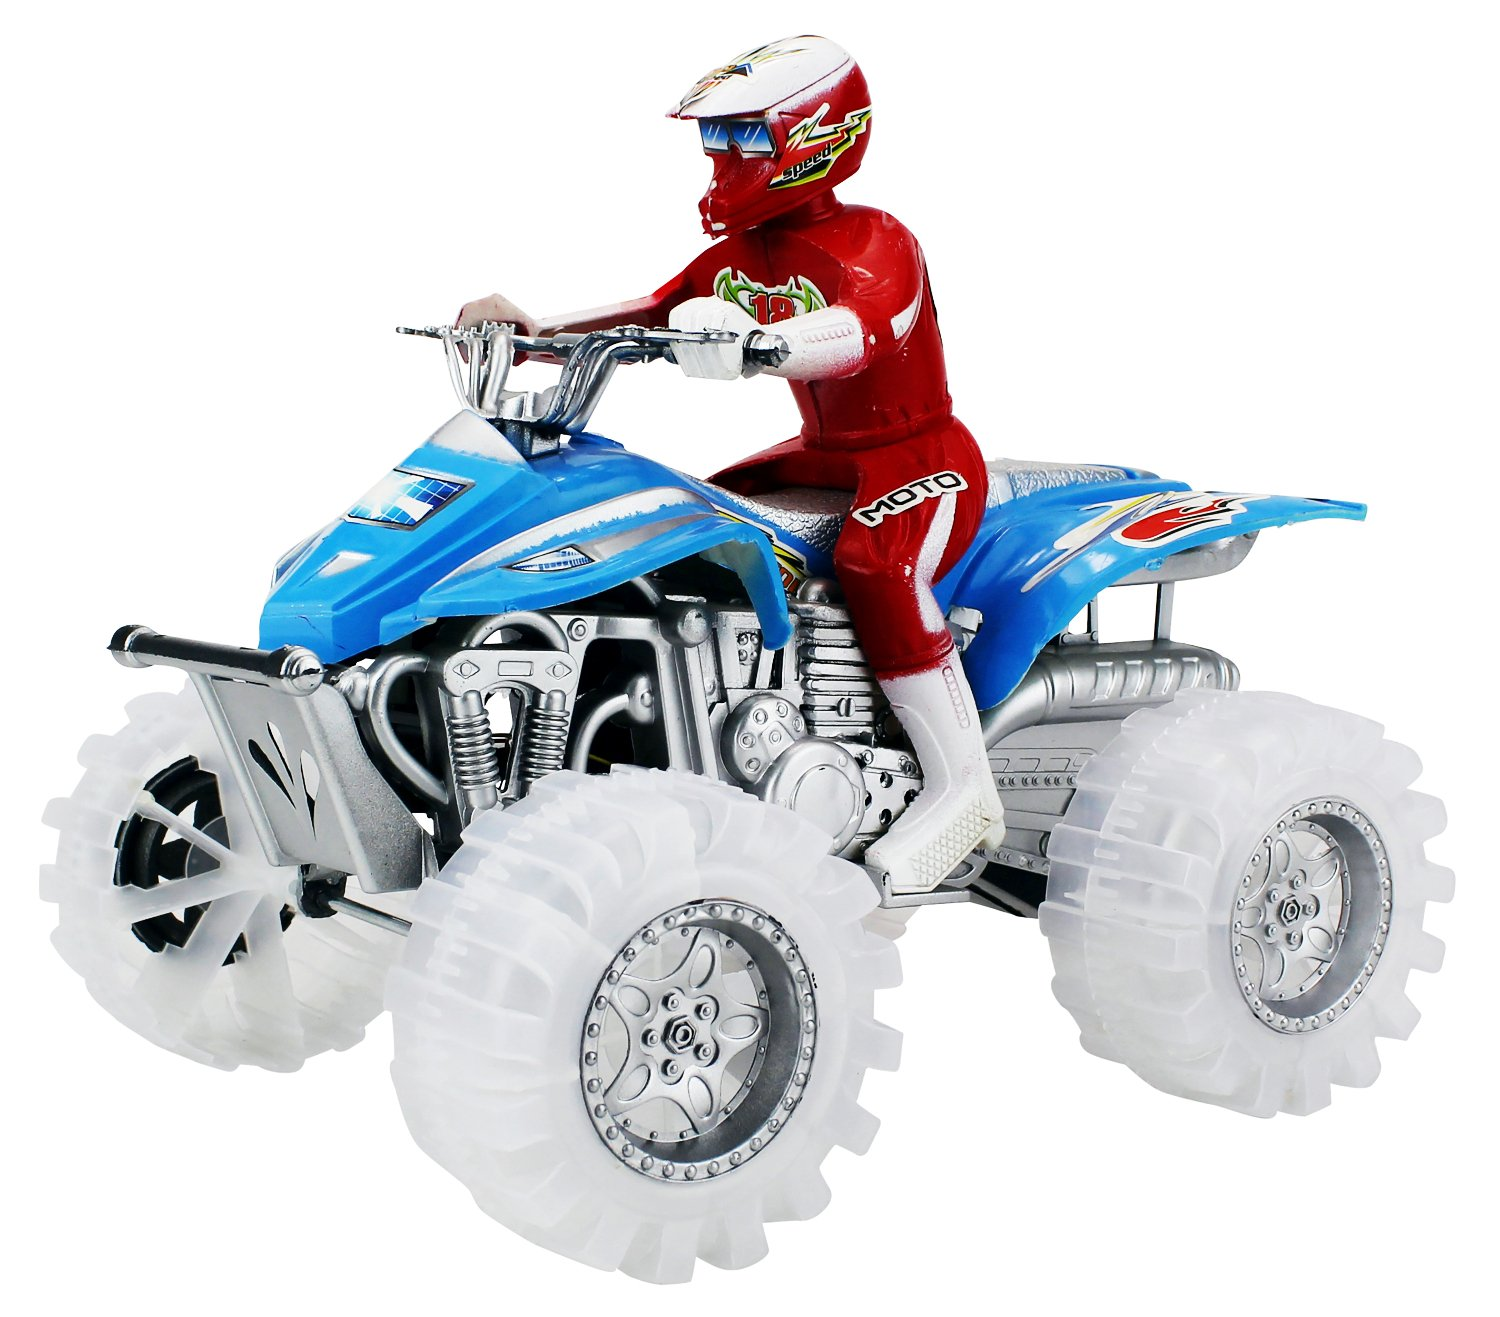 Beach Rider ATV Truck Battery Operated Friction Toy Vehicle Ready To Run w/ Lights, Sounds (Colors May Vary)